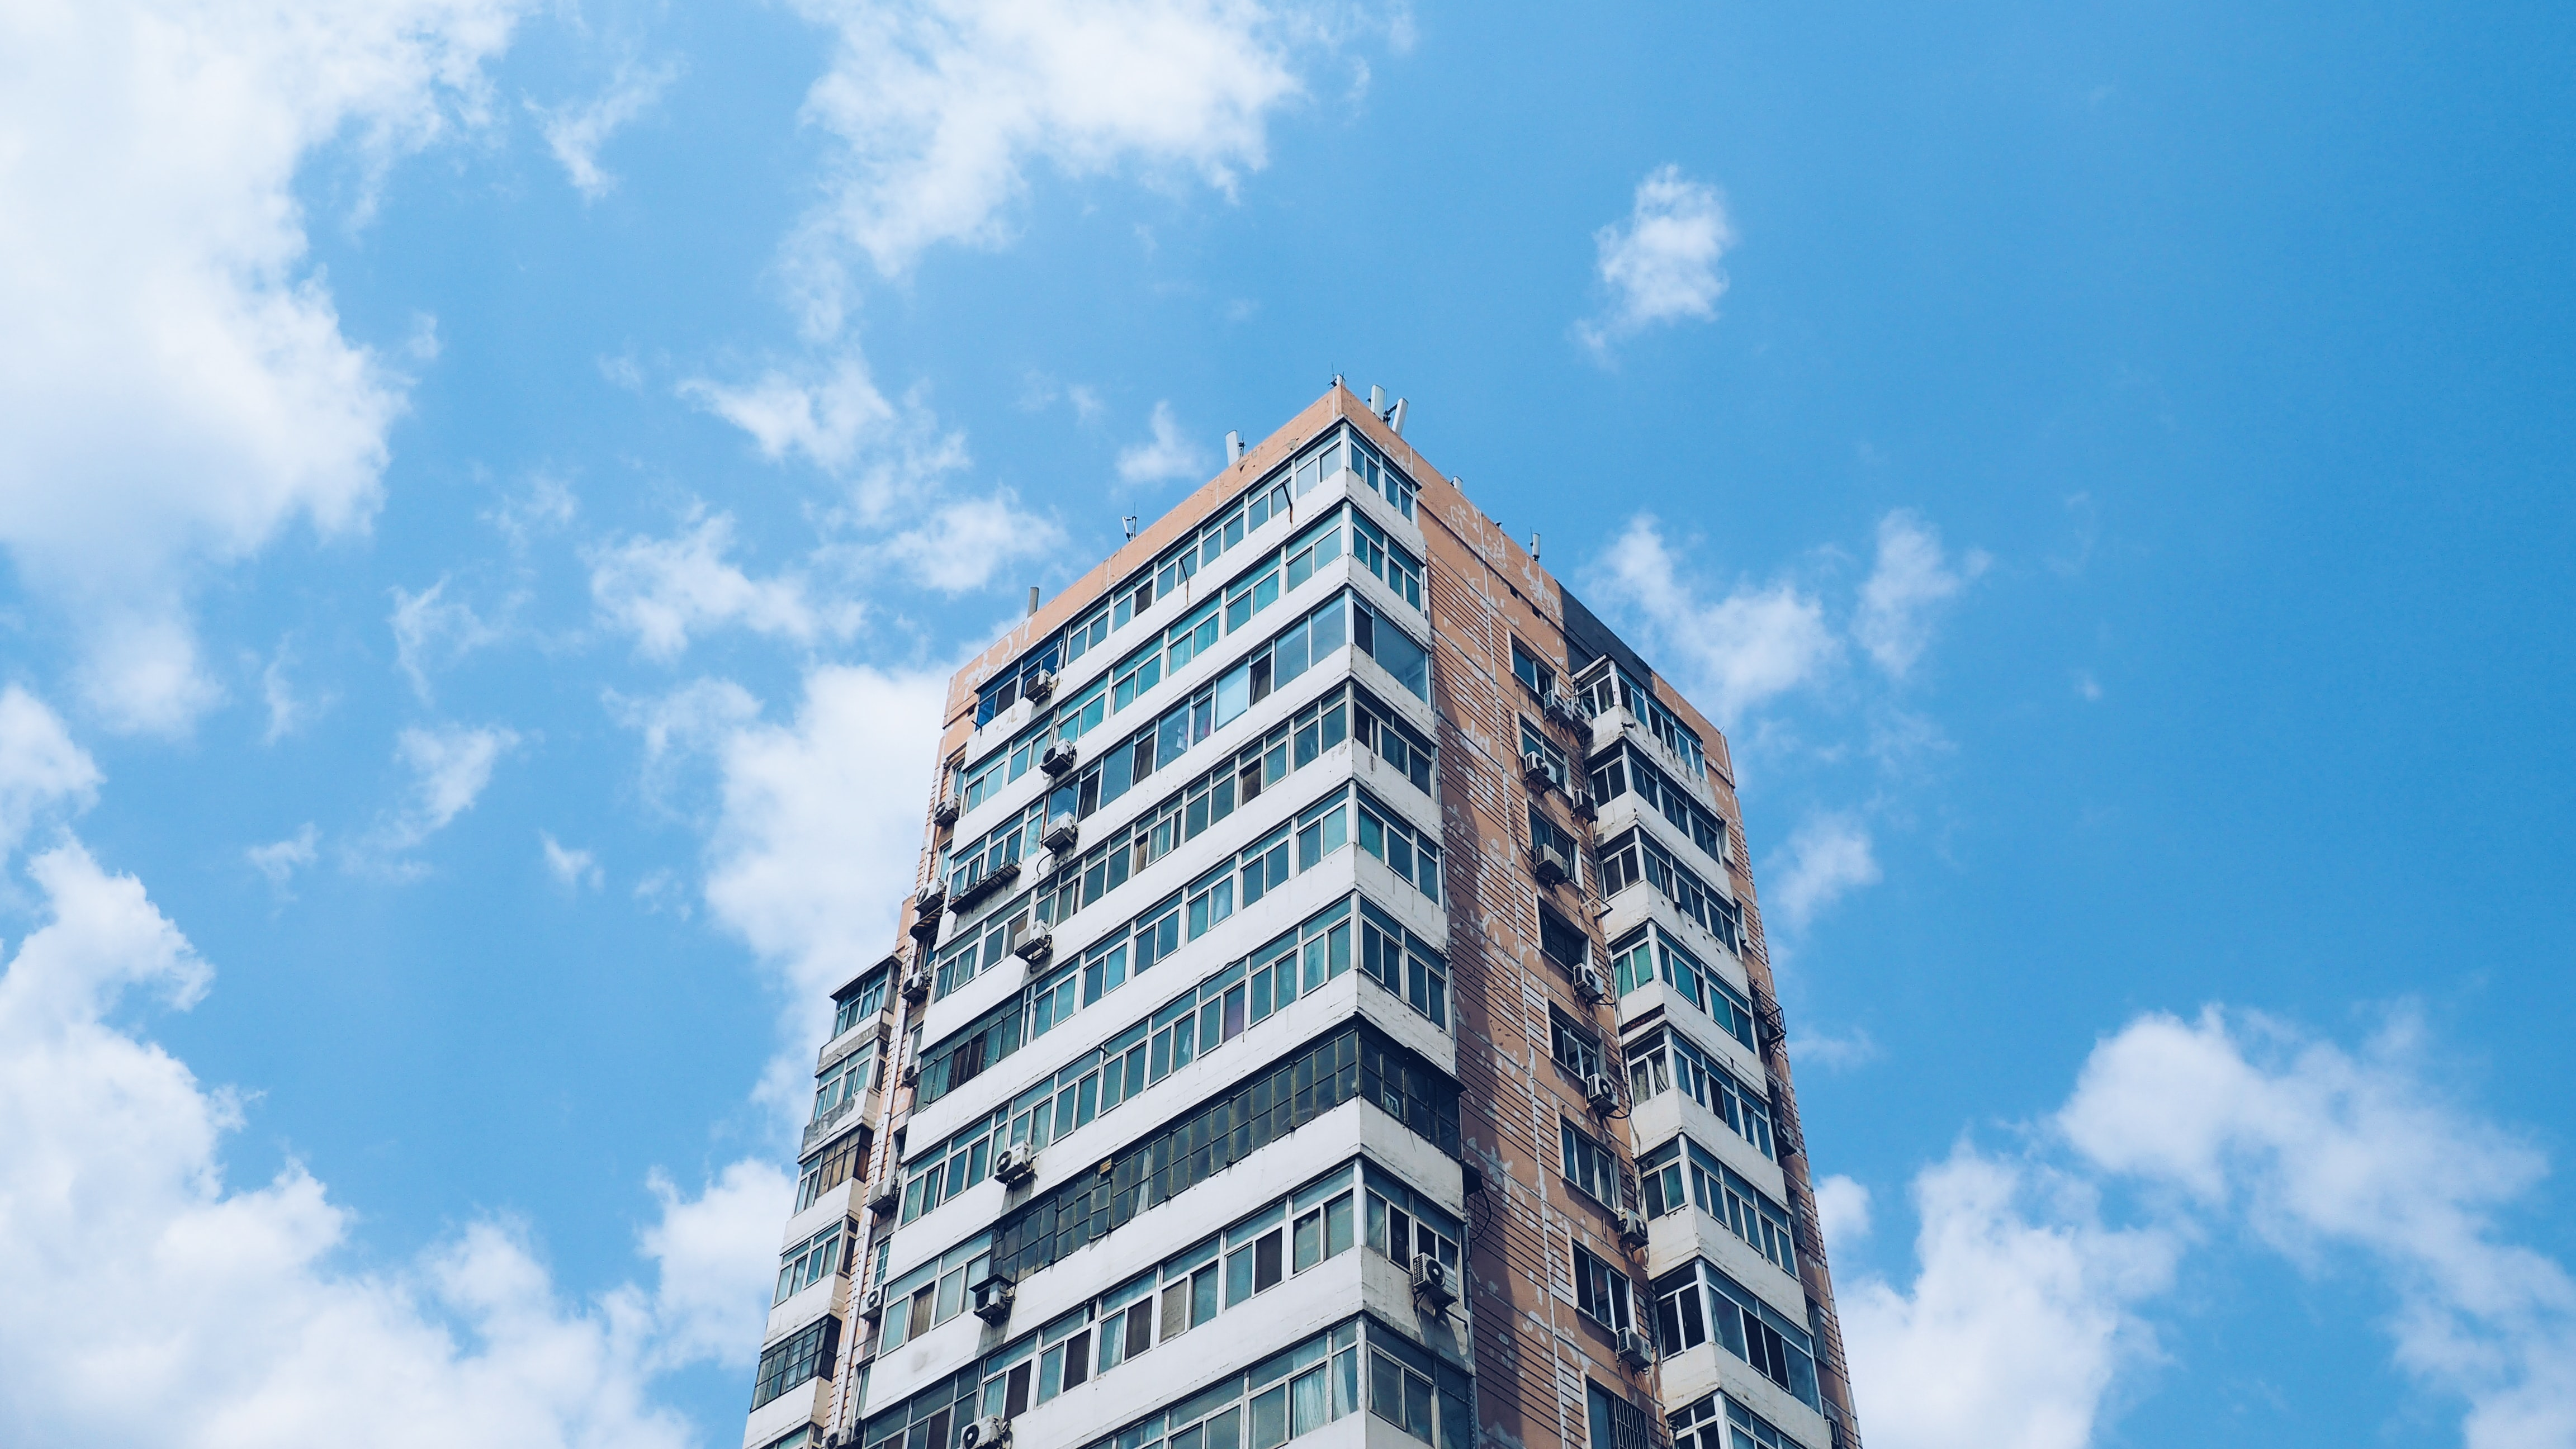 Looking up at a city apartment highrise against a blue sky